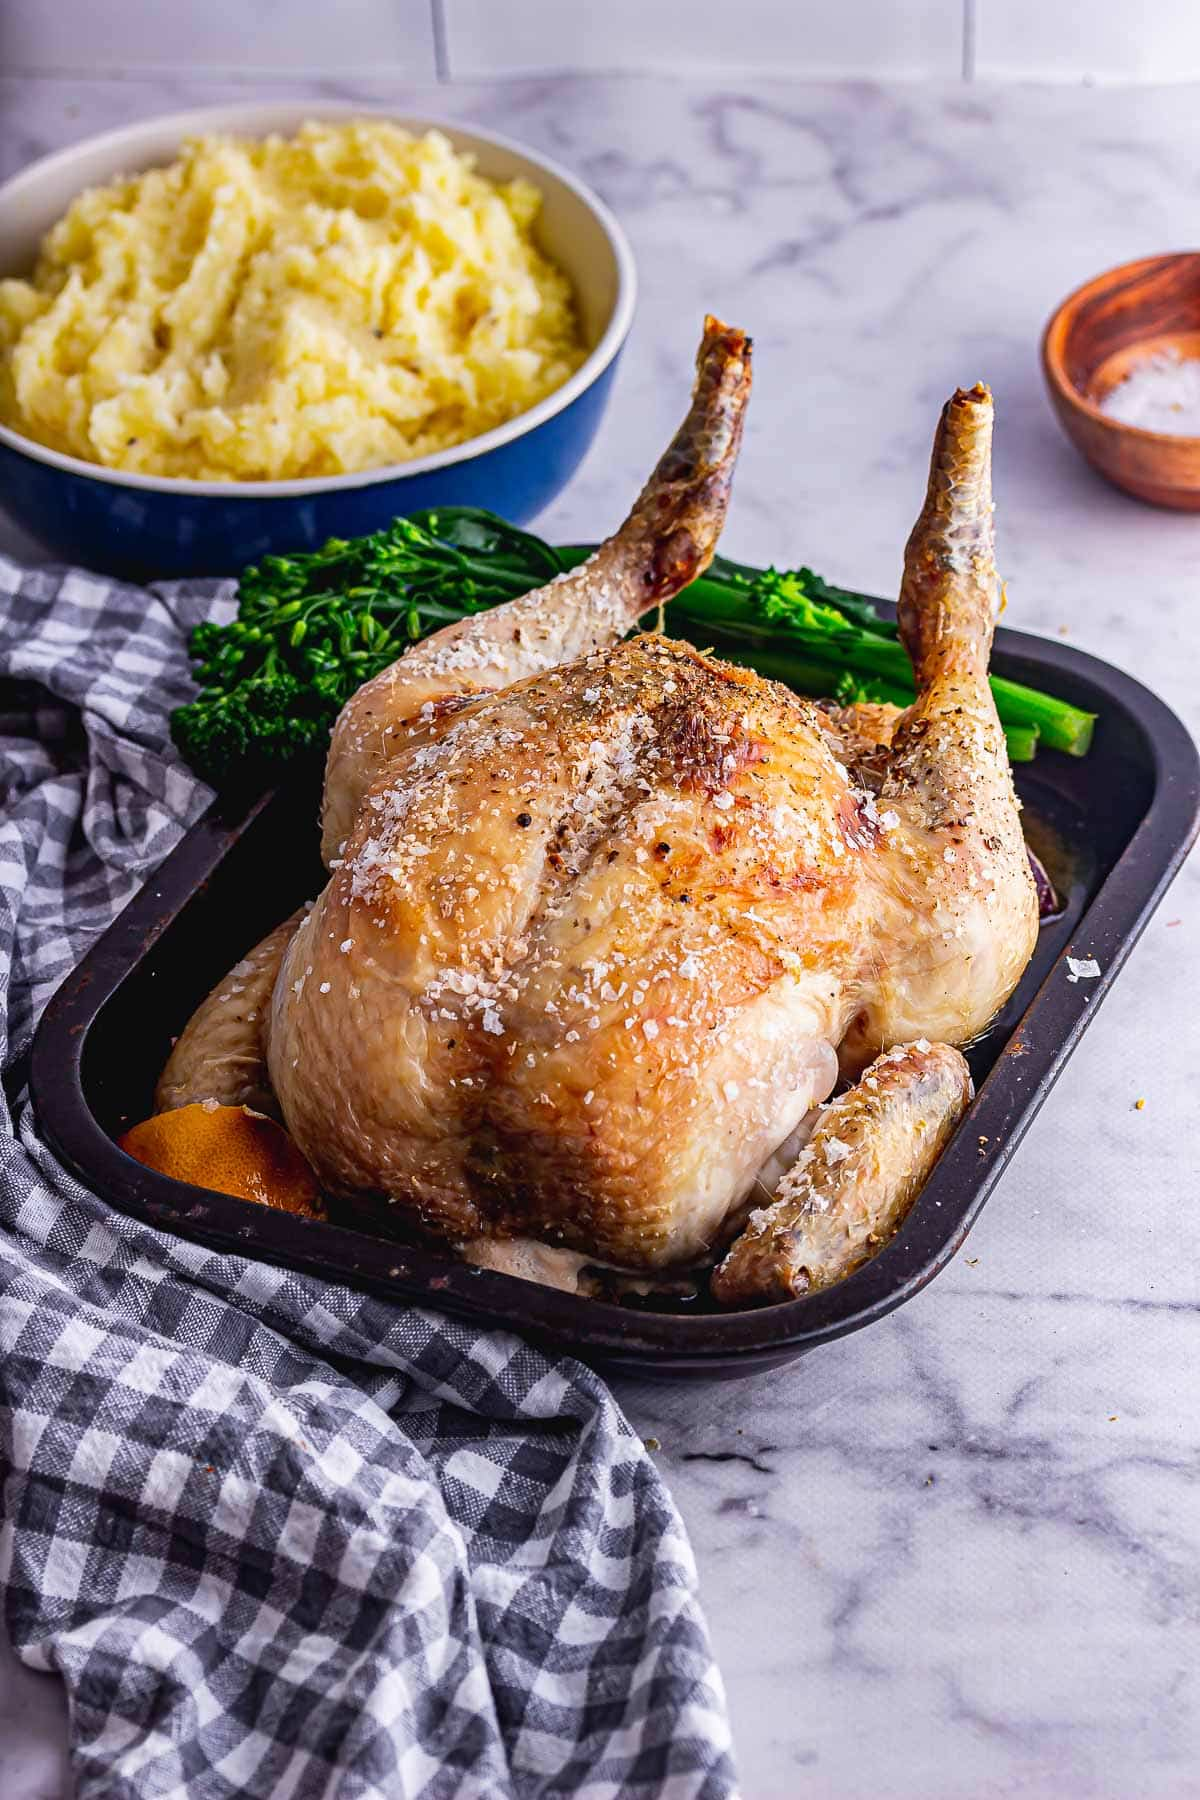 Perfect roast chicken with broccoli and mashed potato